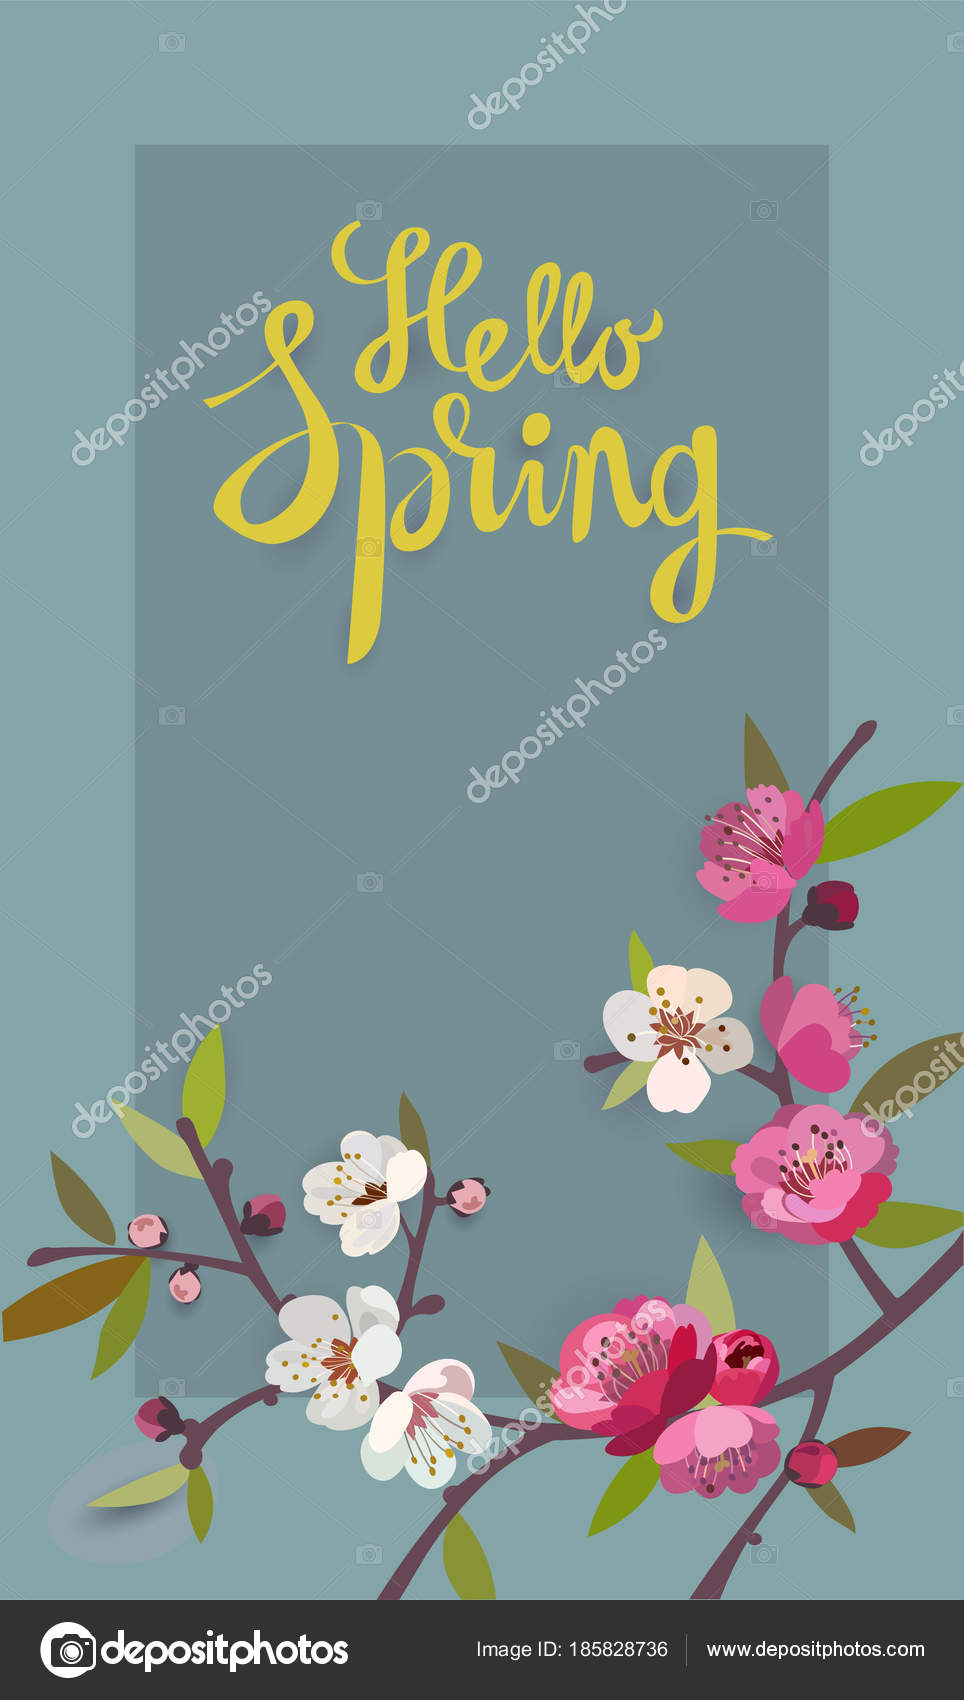 Hello Spring Card For Spring Season With A Frame And A Blooming